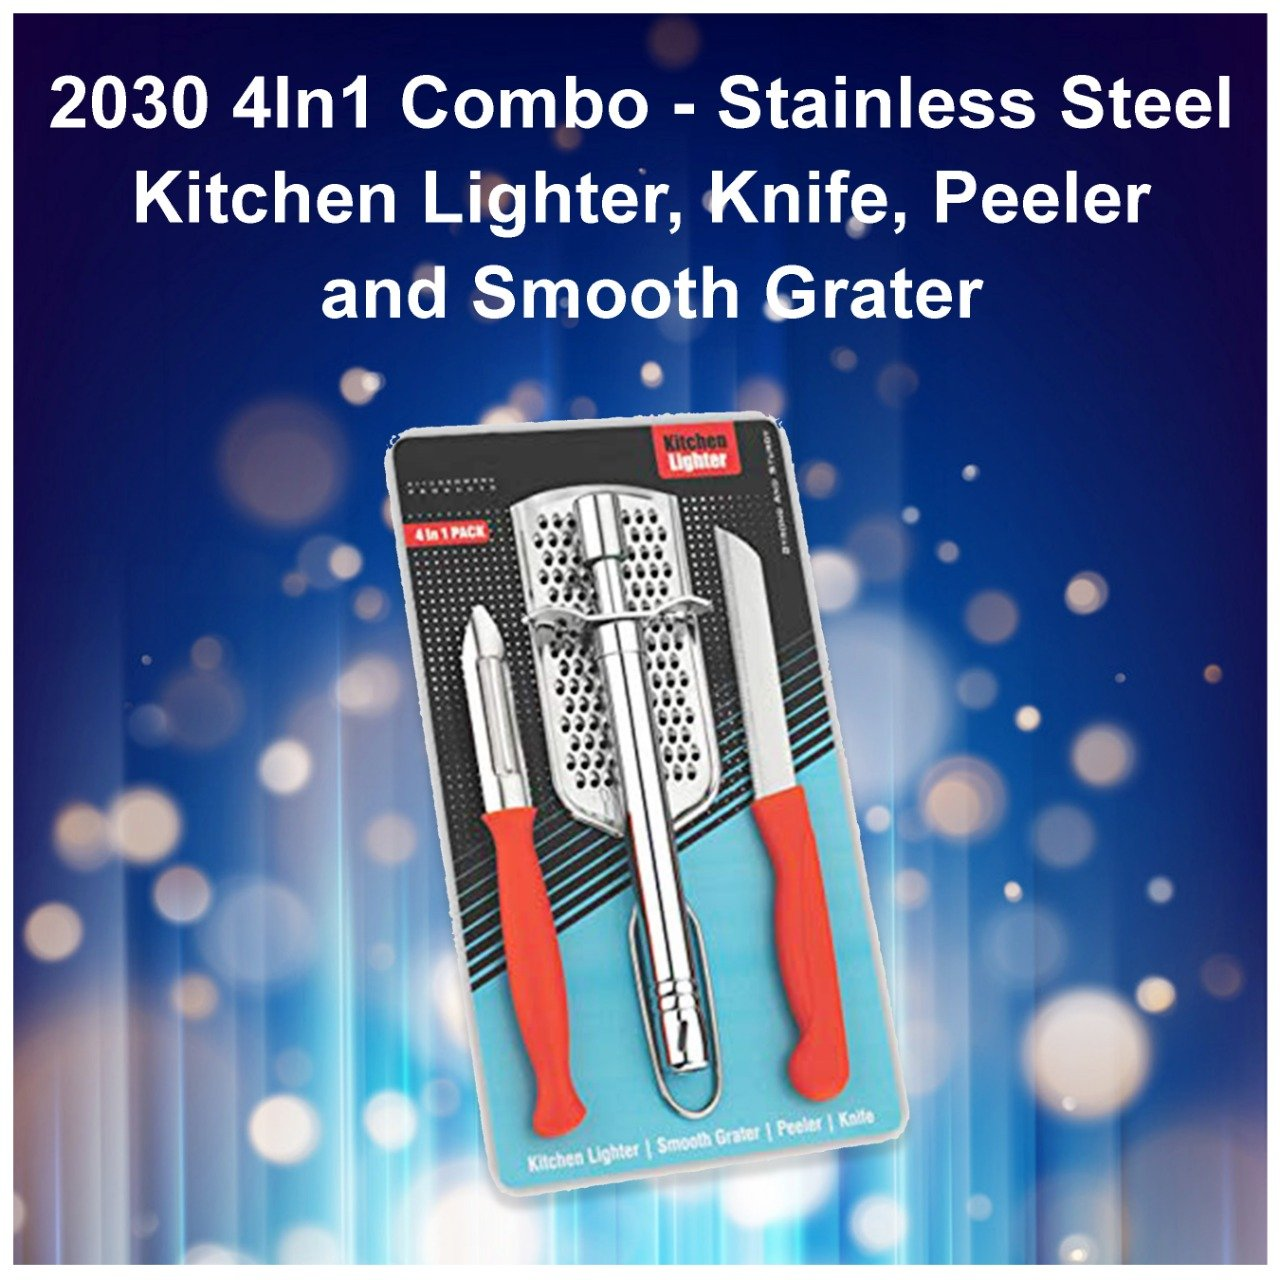 2030 4In1 Combo - Stainless Steel Kitchen Lighter, Knife, Peeler and Smooth Grater